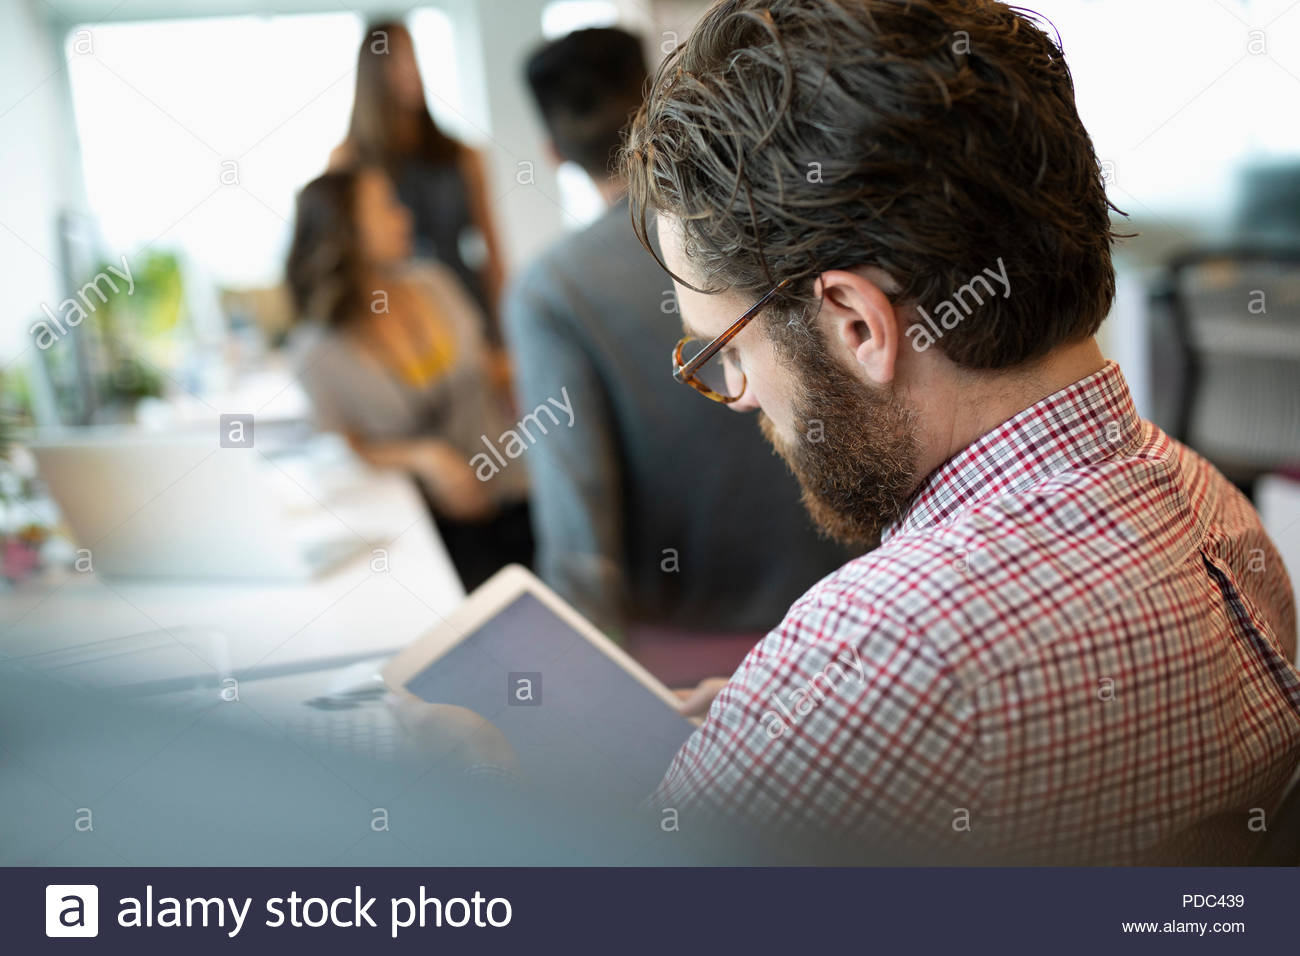 Focused businessman using digital tablet in office - Stock Image